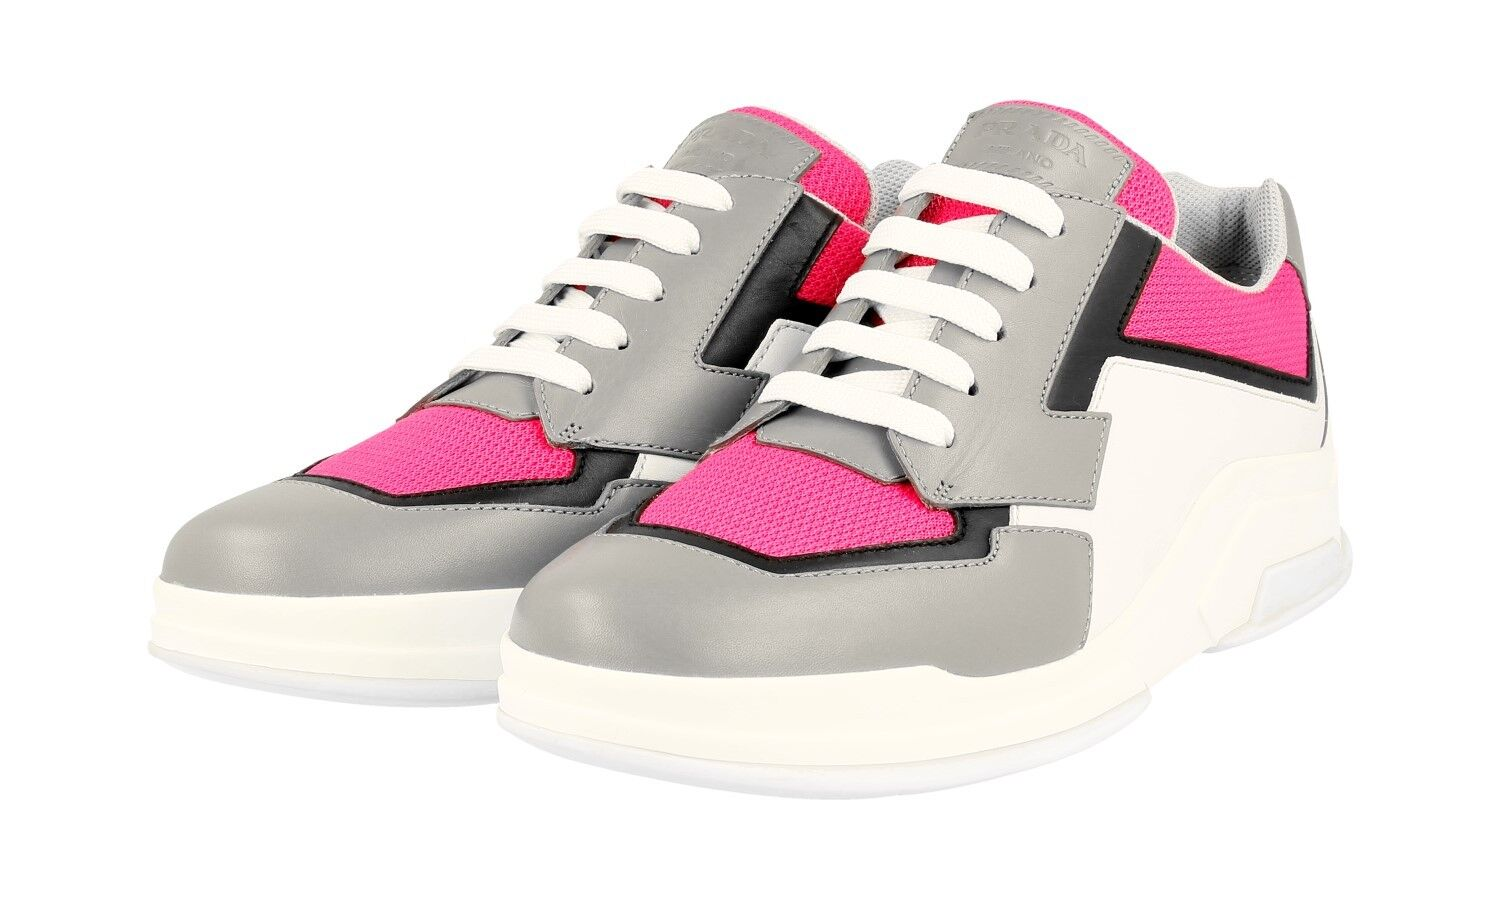 AUTH LUXURY PRADA SNEAKERS SHOES 3E5964 GREY PINK NIB US 11 EU 41 41,5 UK 8